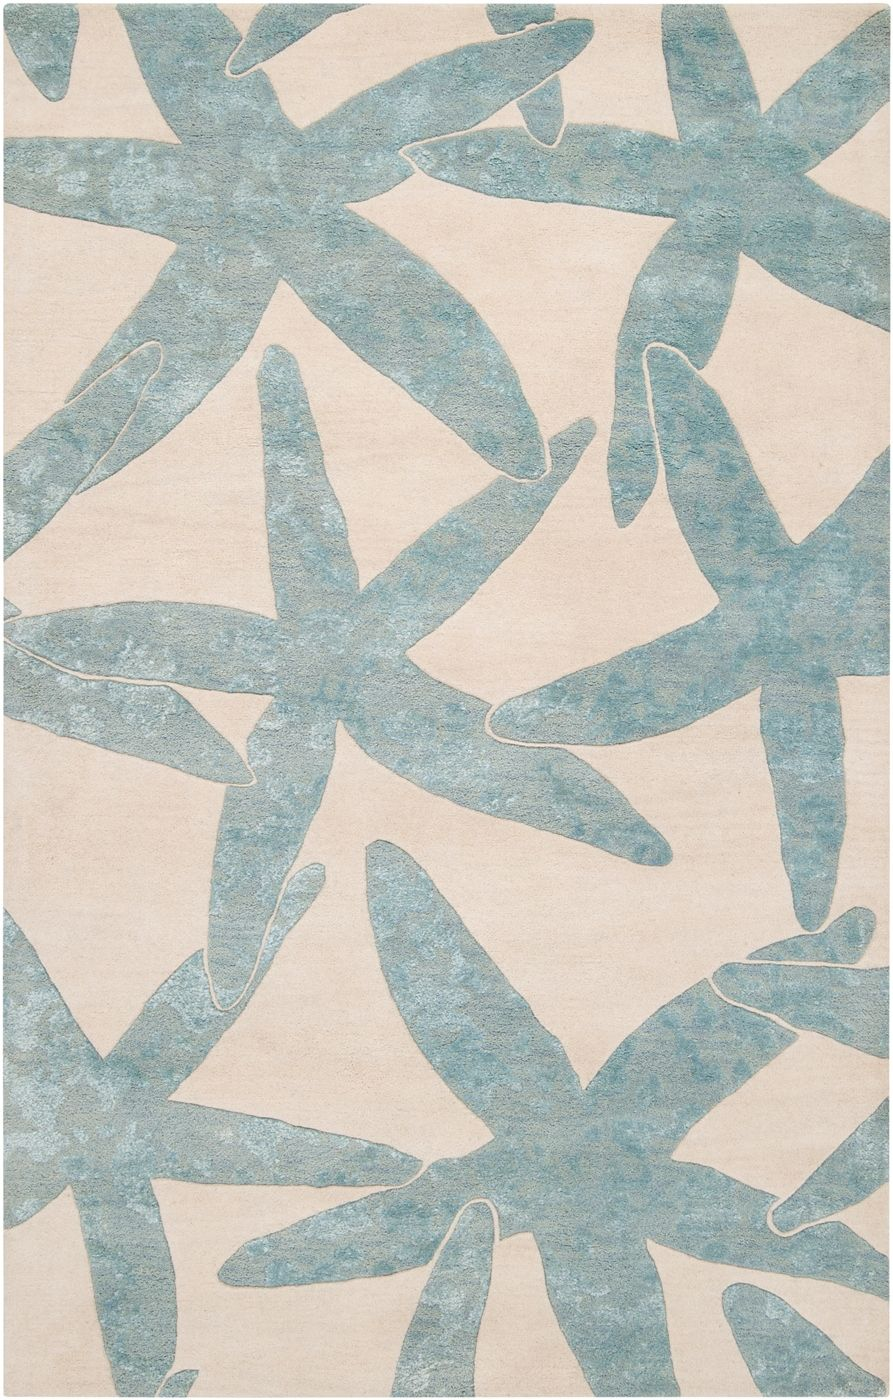 Nice Beach Inspired Rugs Part - 3: Somerset Bay Hand Tufted Bacelot Bay Blue Beach Inspired Wool Rug 5 X 8